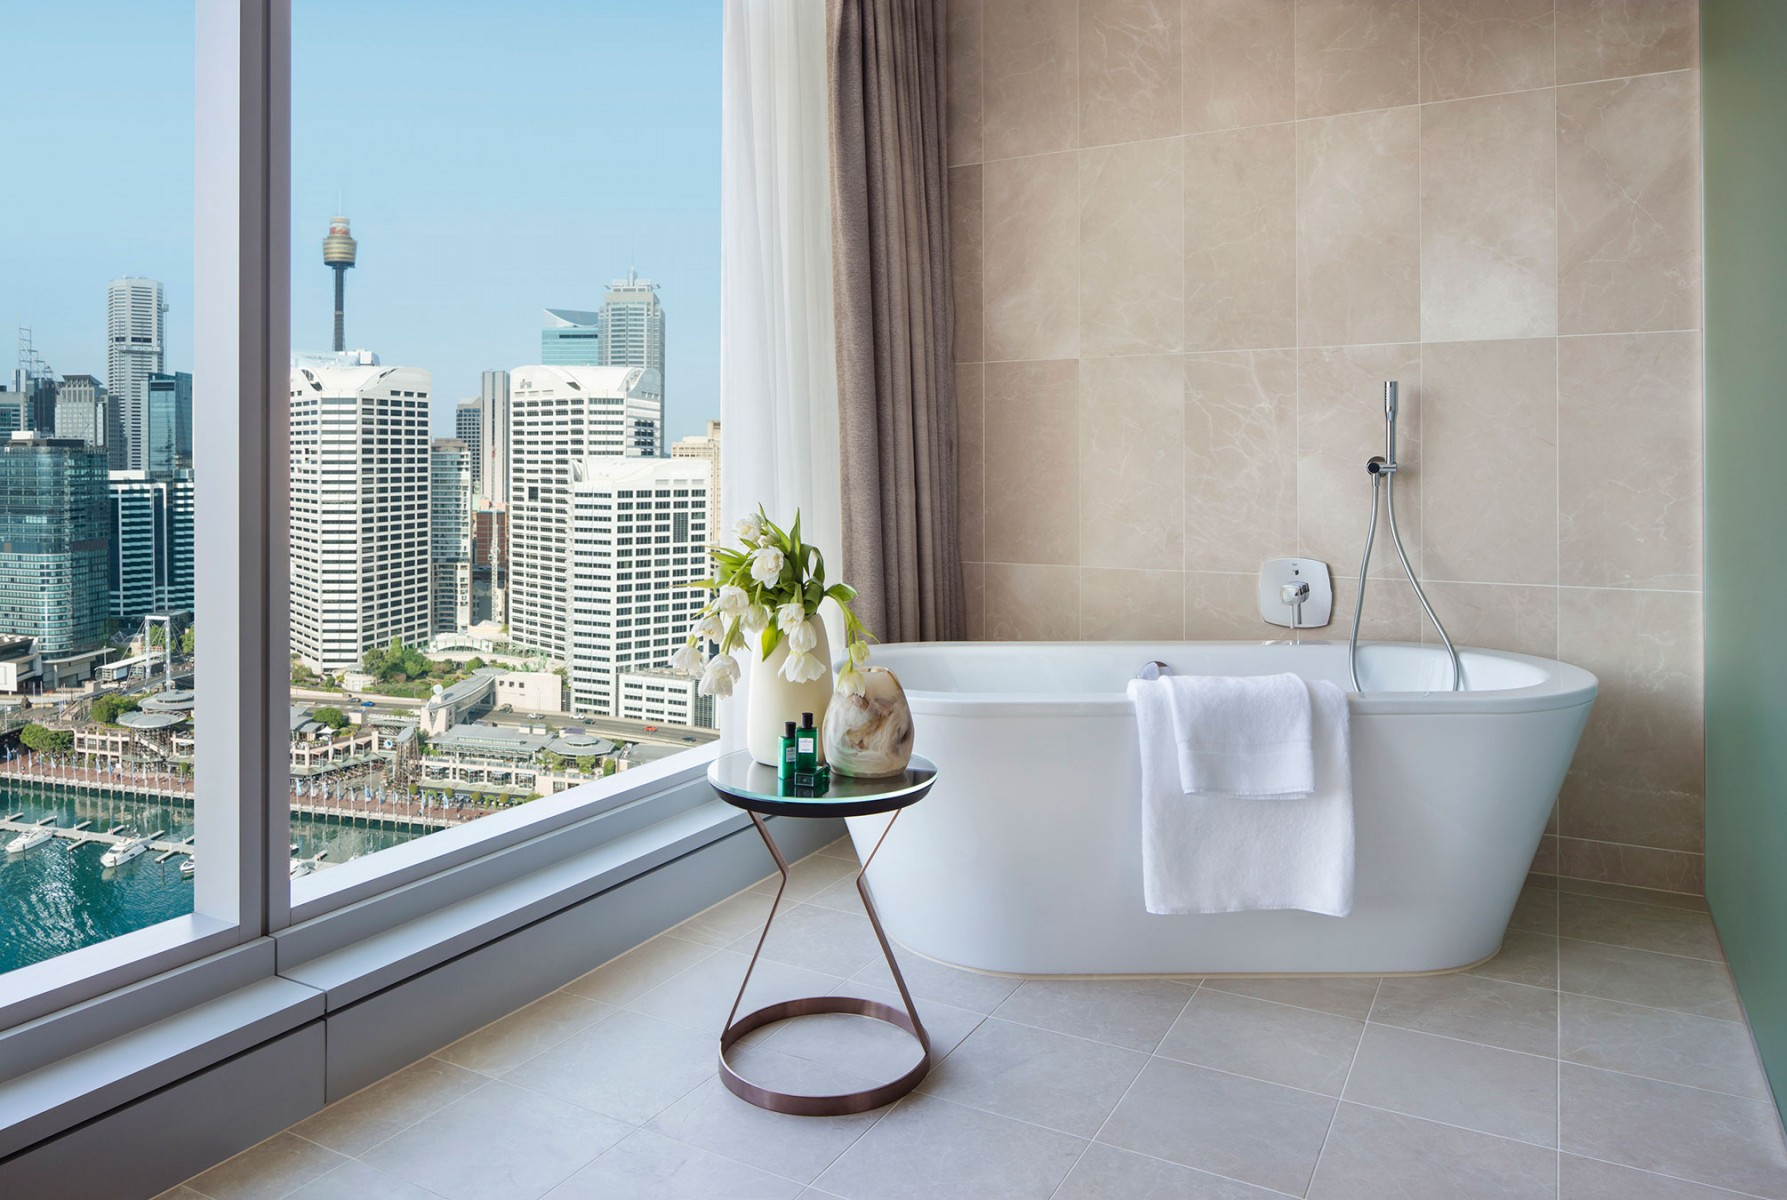 Sofitel Sydney Darling Harbour 2